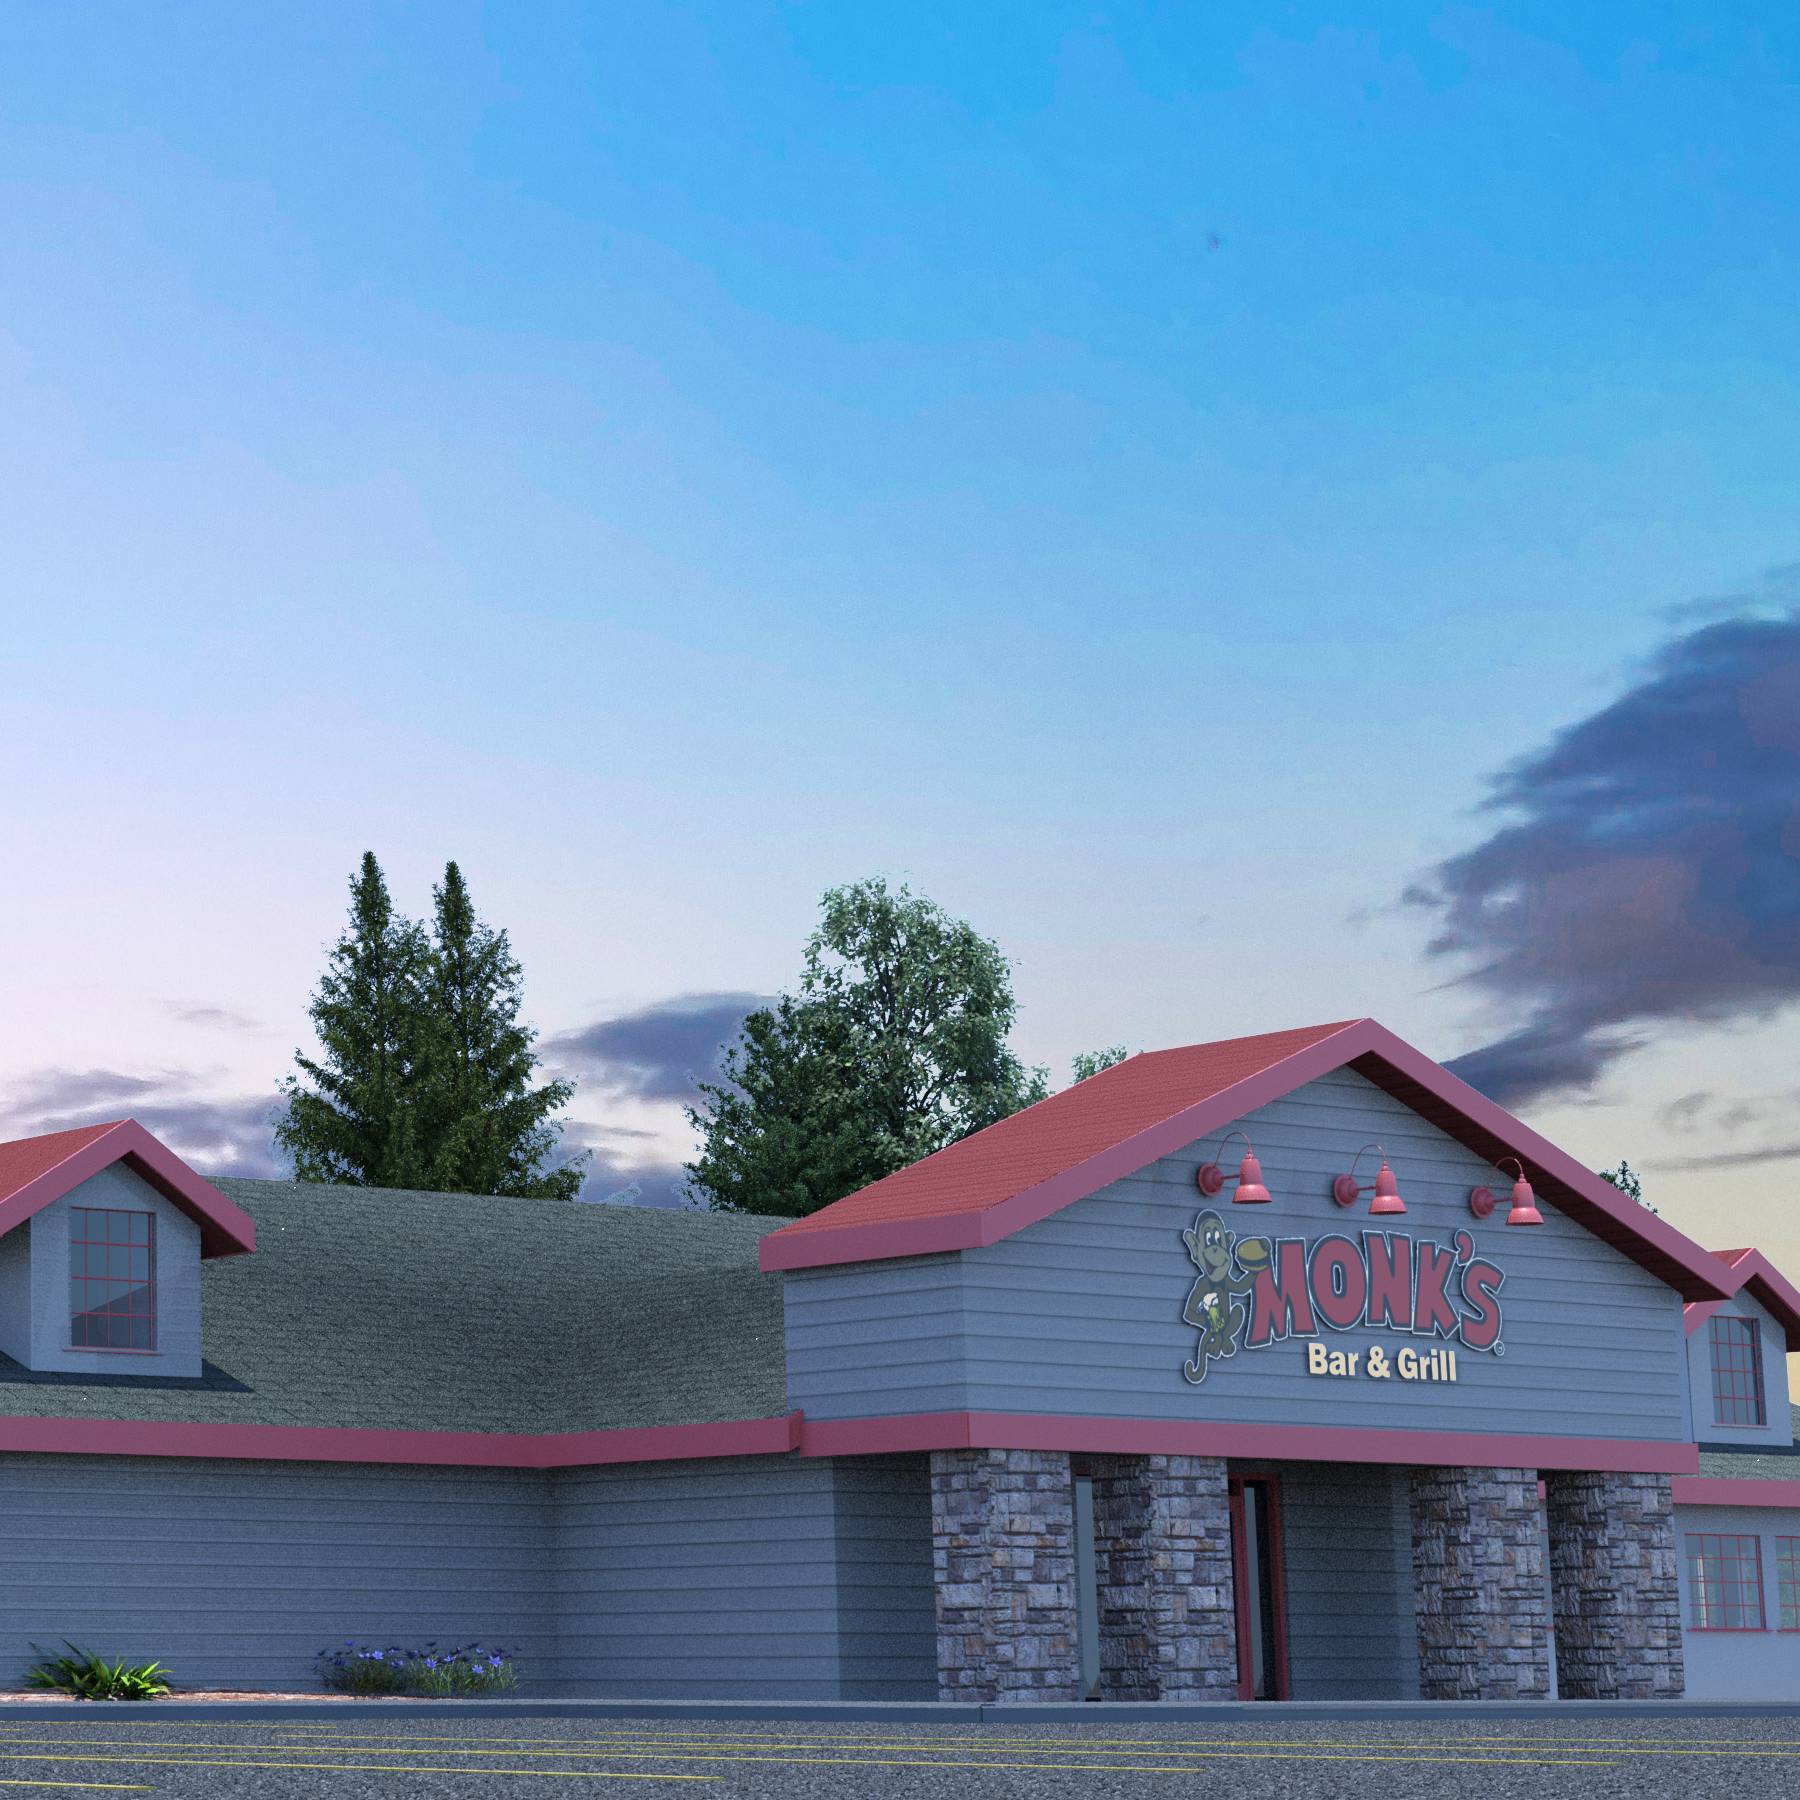 Plans for Monk's Bar & Grill in Plover begin to take shape; opening set for May 1